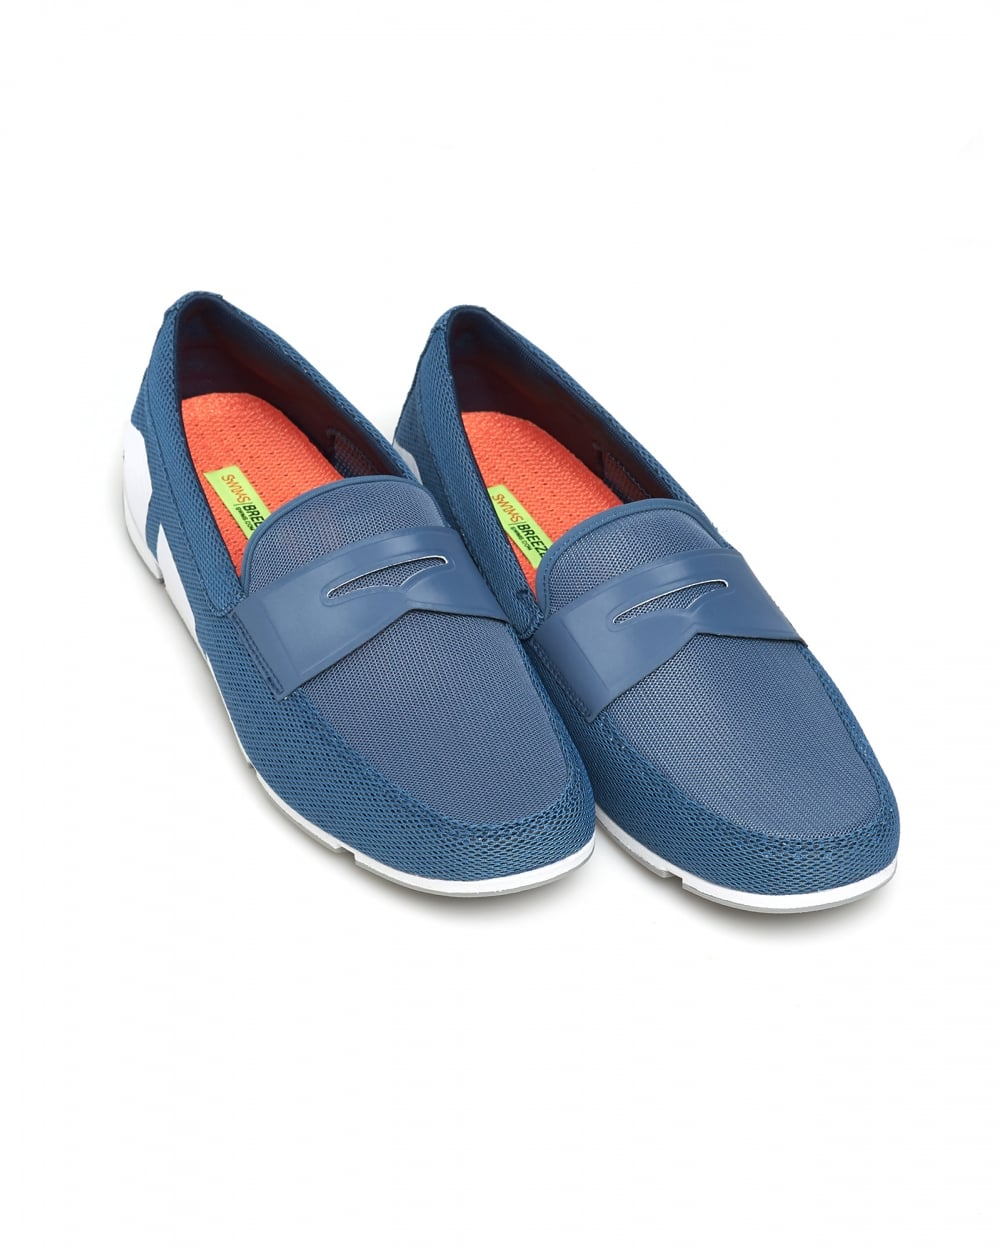 6b17ea40cd8 Swims Mens Breeze Penny Loafer